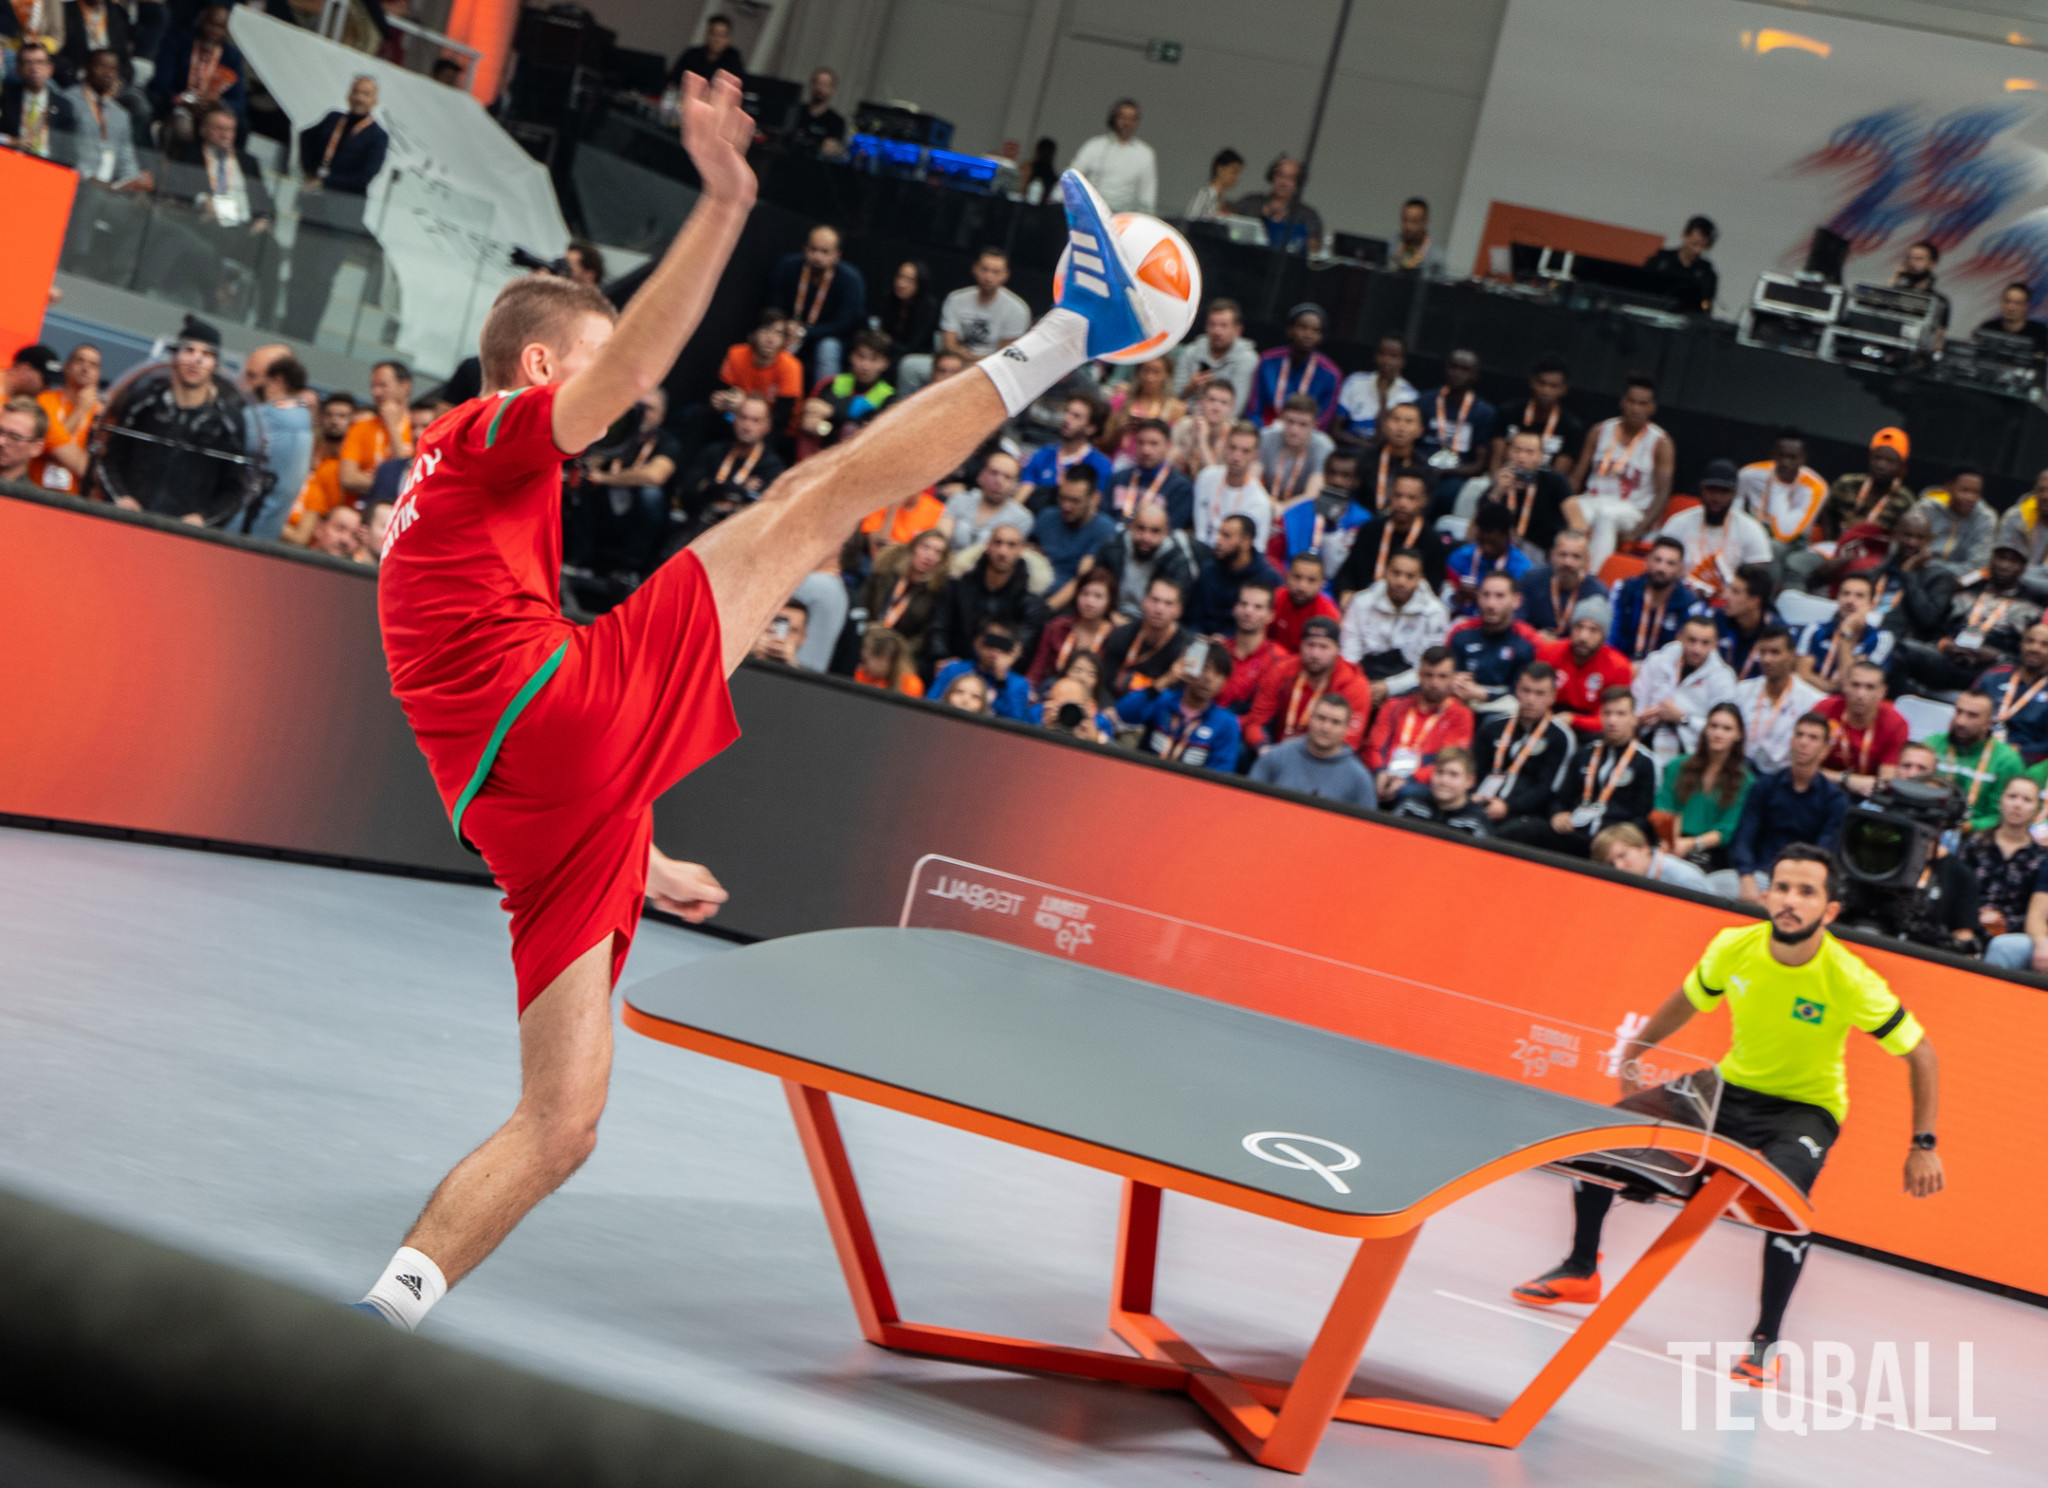 Teqball across all five continents has witnessed investment following the creation of the programme in May 2020 ©FITEQ